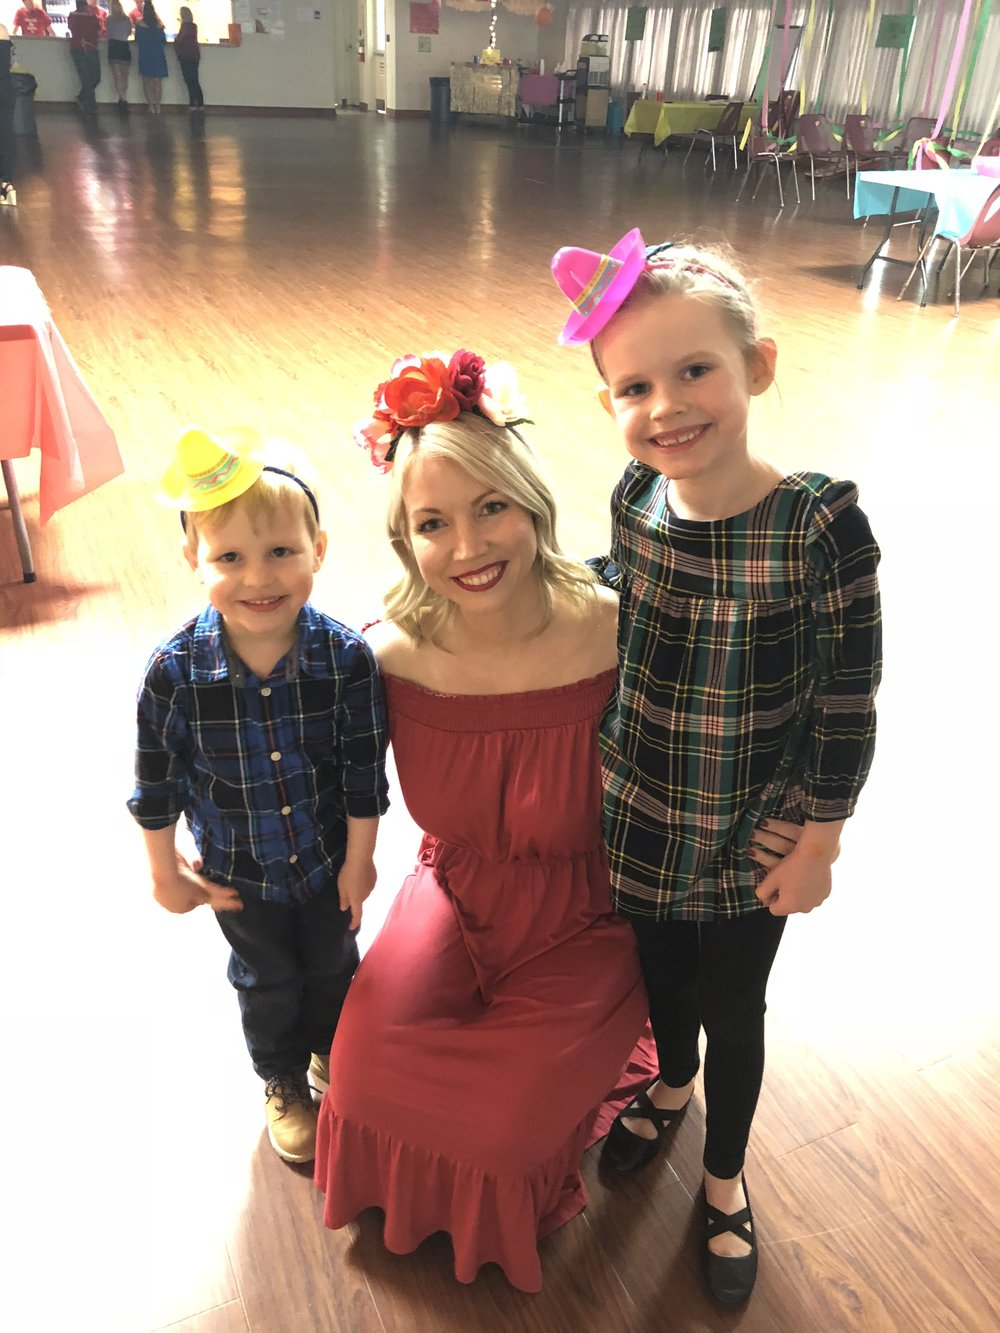 Our cutie patootie niece and nephew (flower girl and ring bearer) were also able to join in on some of the fun early in the night!